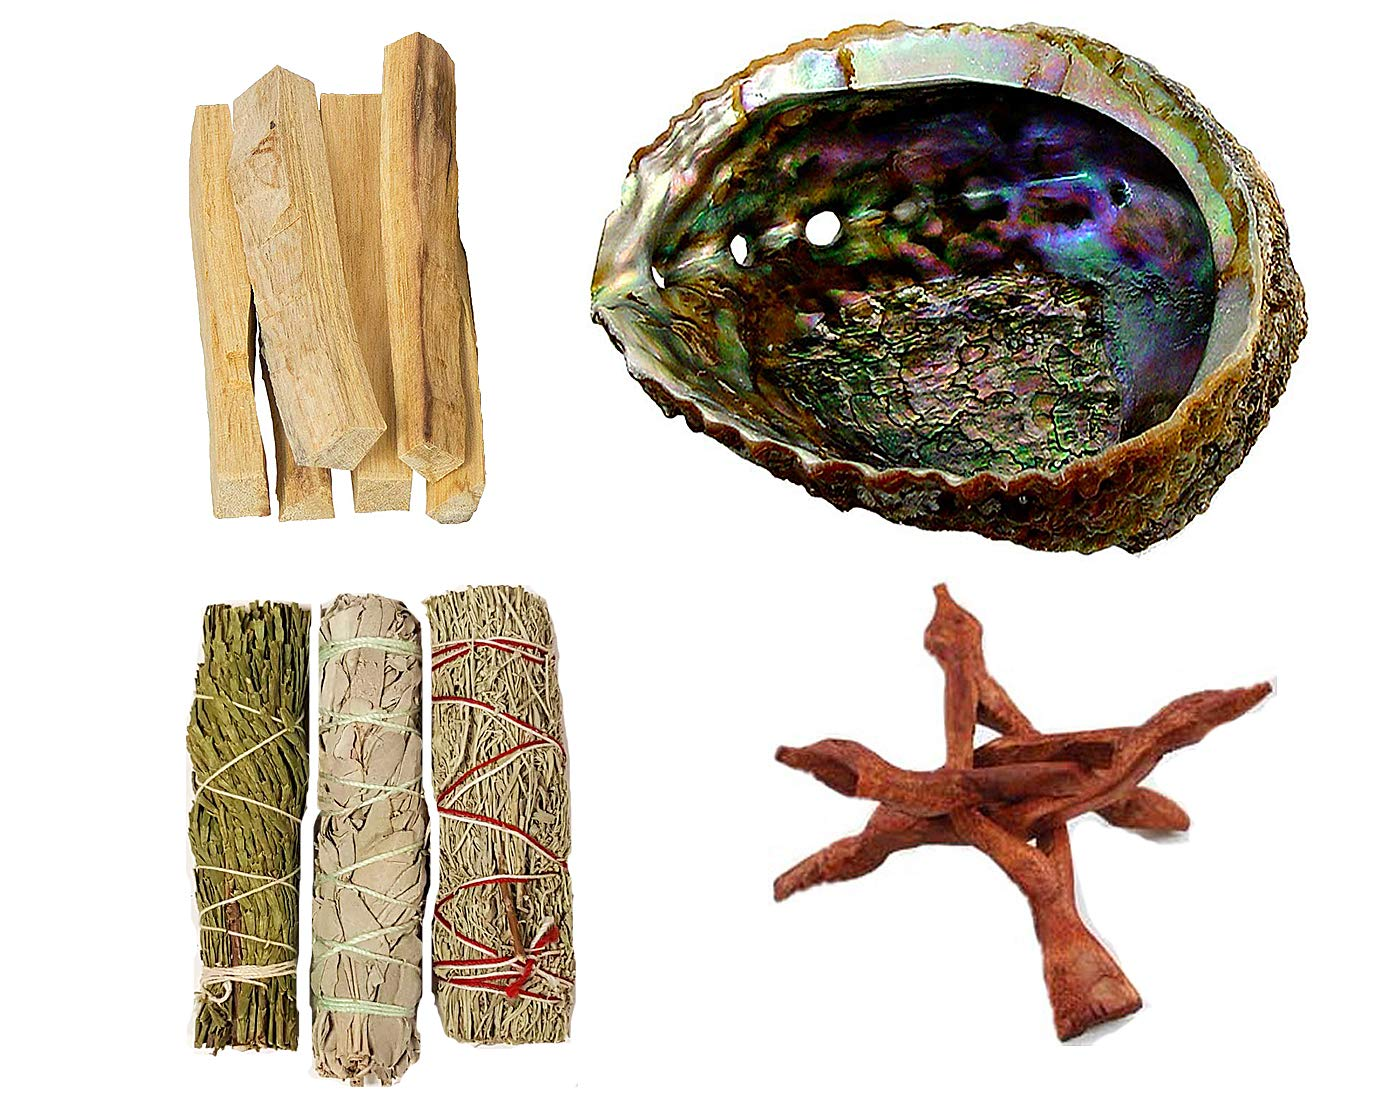 Clarity & Muse Sage Smudge Stick Kit - White Sage, Palo Santo Sticks, Cedar, Blue Sage, Abalone Shell for smudging - House Blessing Kit by Clarity & Muse